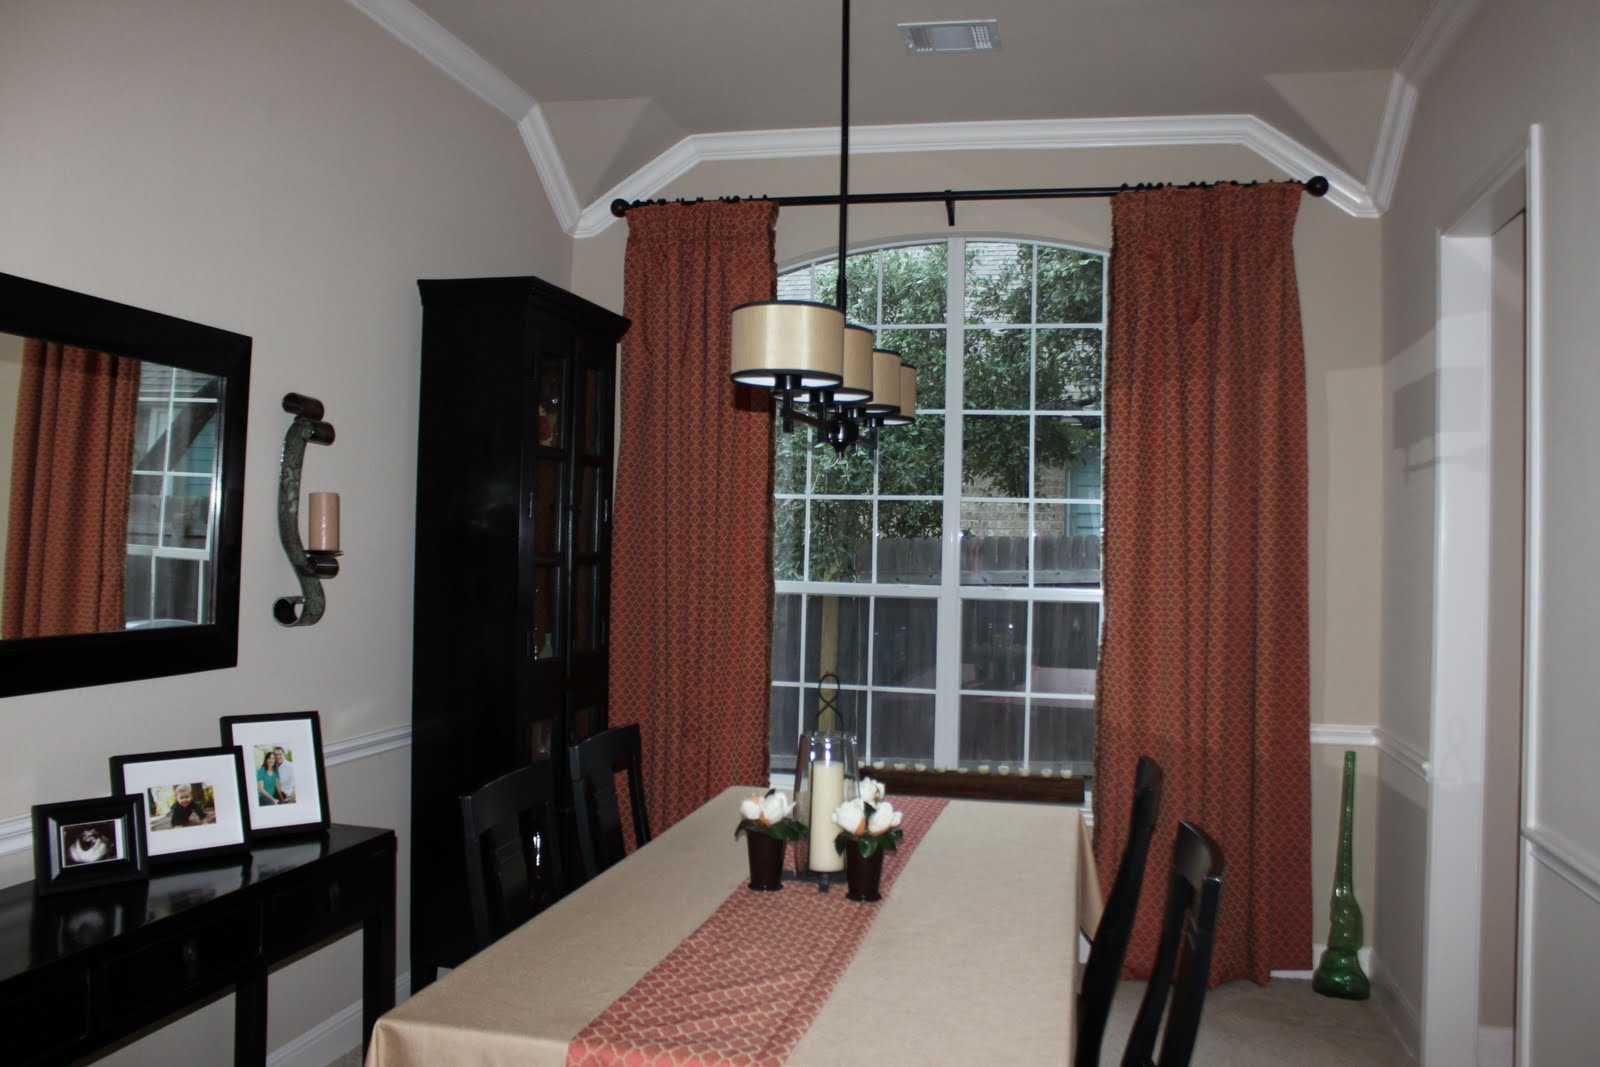 panel drapes look drapery exclusive embroidered and curtains dreacdesigns make luxurious silk home images faux on best more custom your pinterest